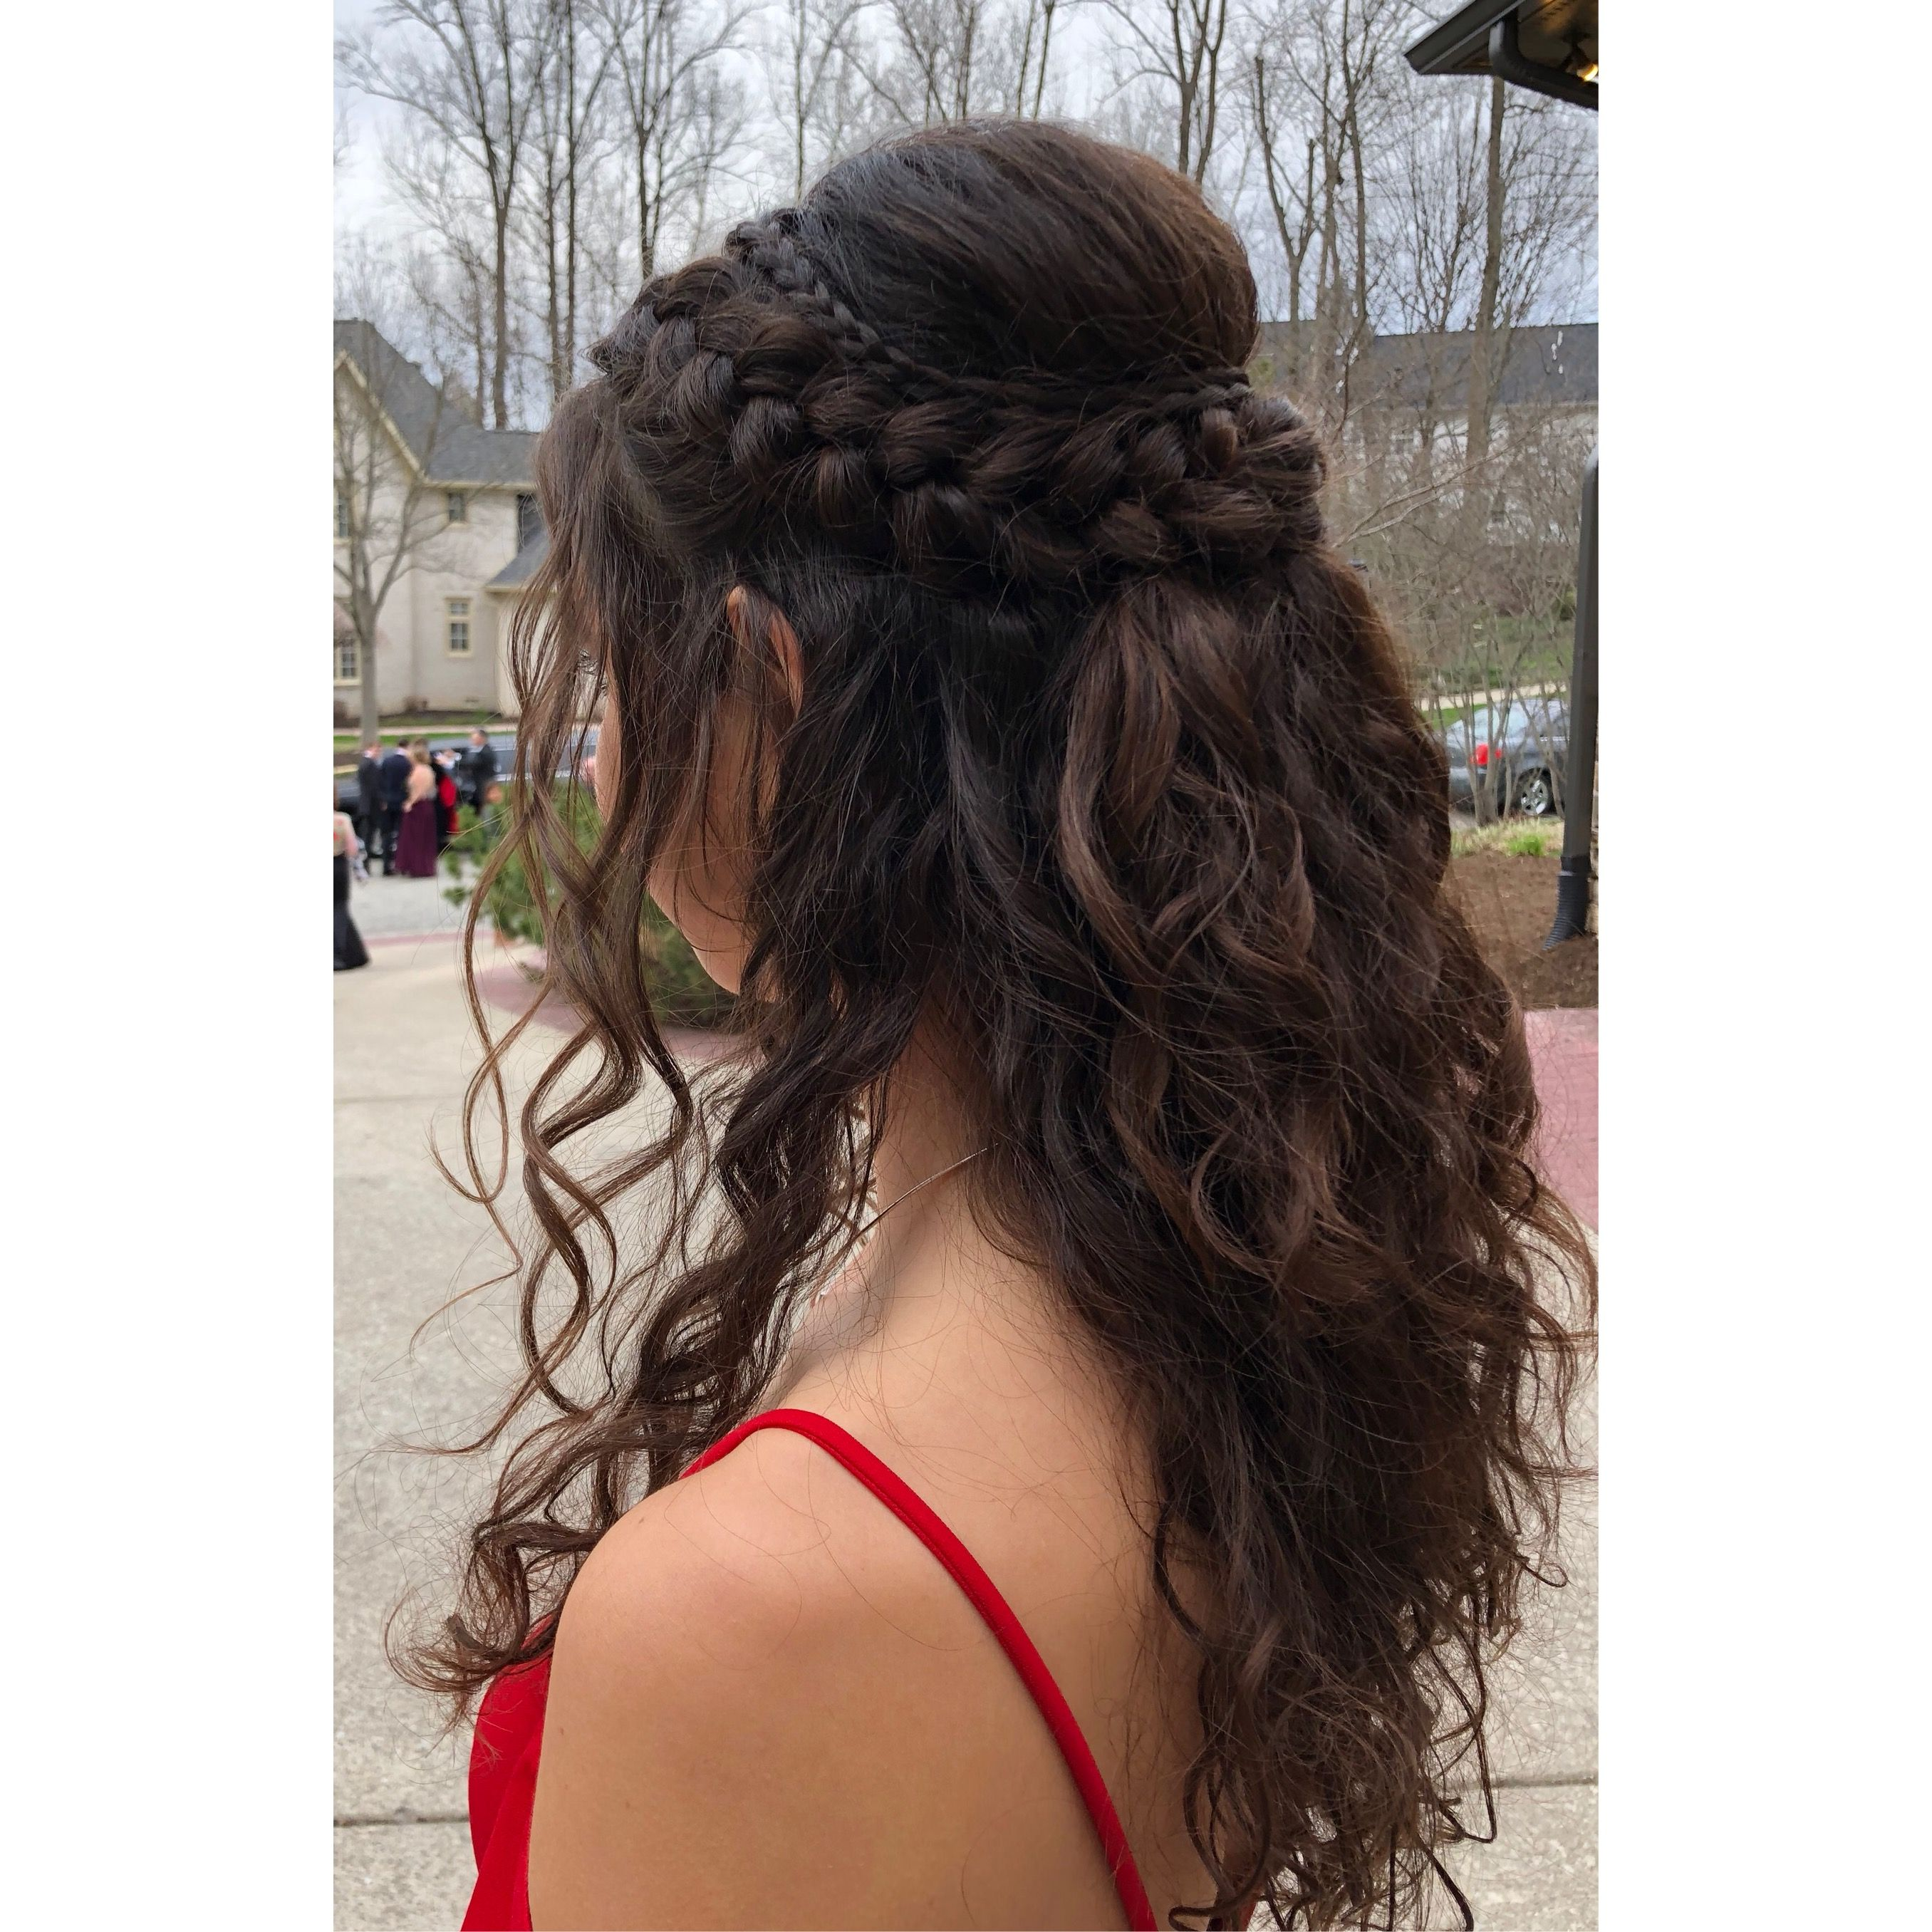 Prom Hair For Natural Curls Curly Hair Styles Prom Hair Natural Curls